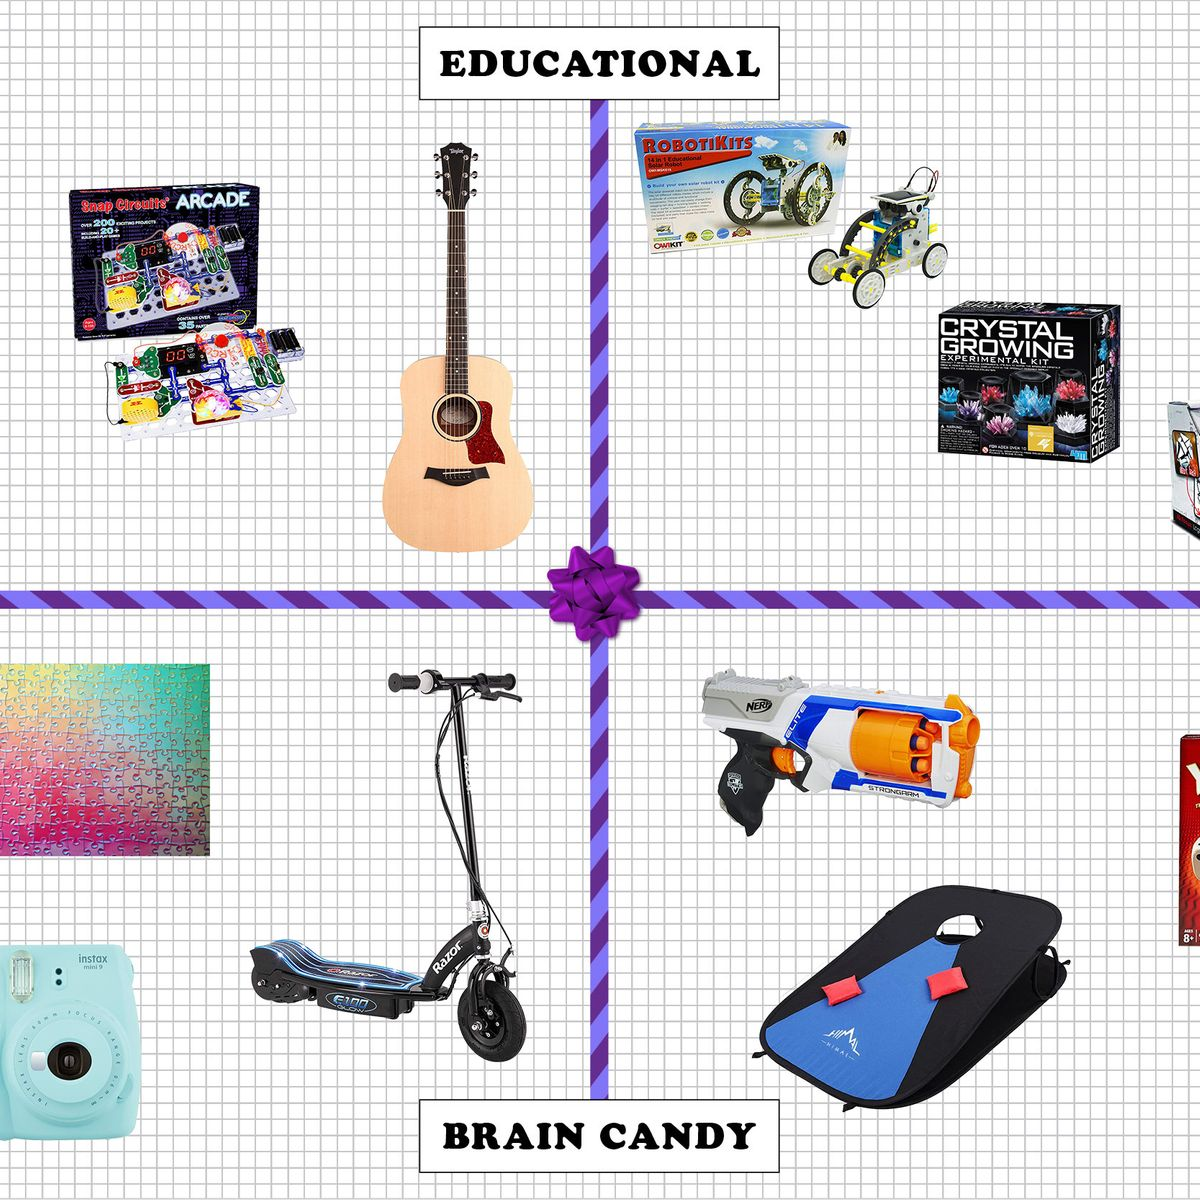 Most Popular Gifts For Christmas 2020 24 Best Gifts for 10 Year Olds 2020 | The Strategist | New York